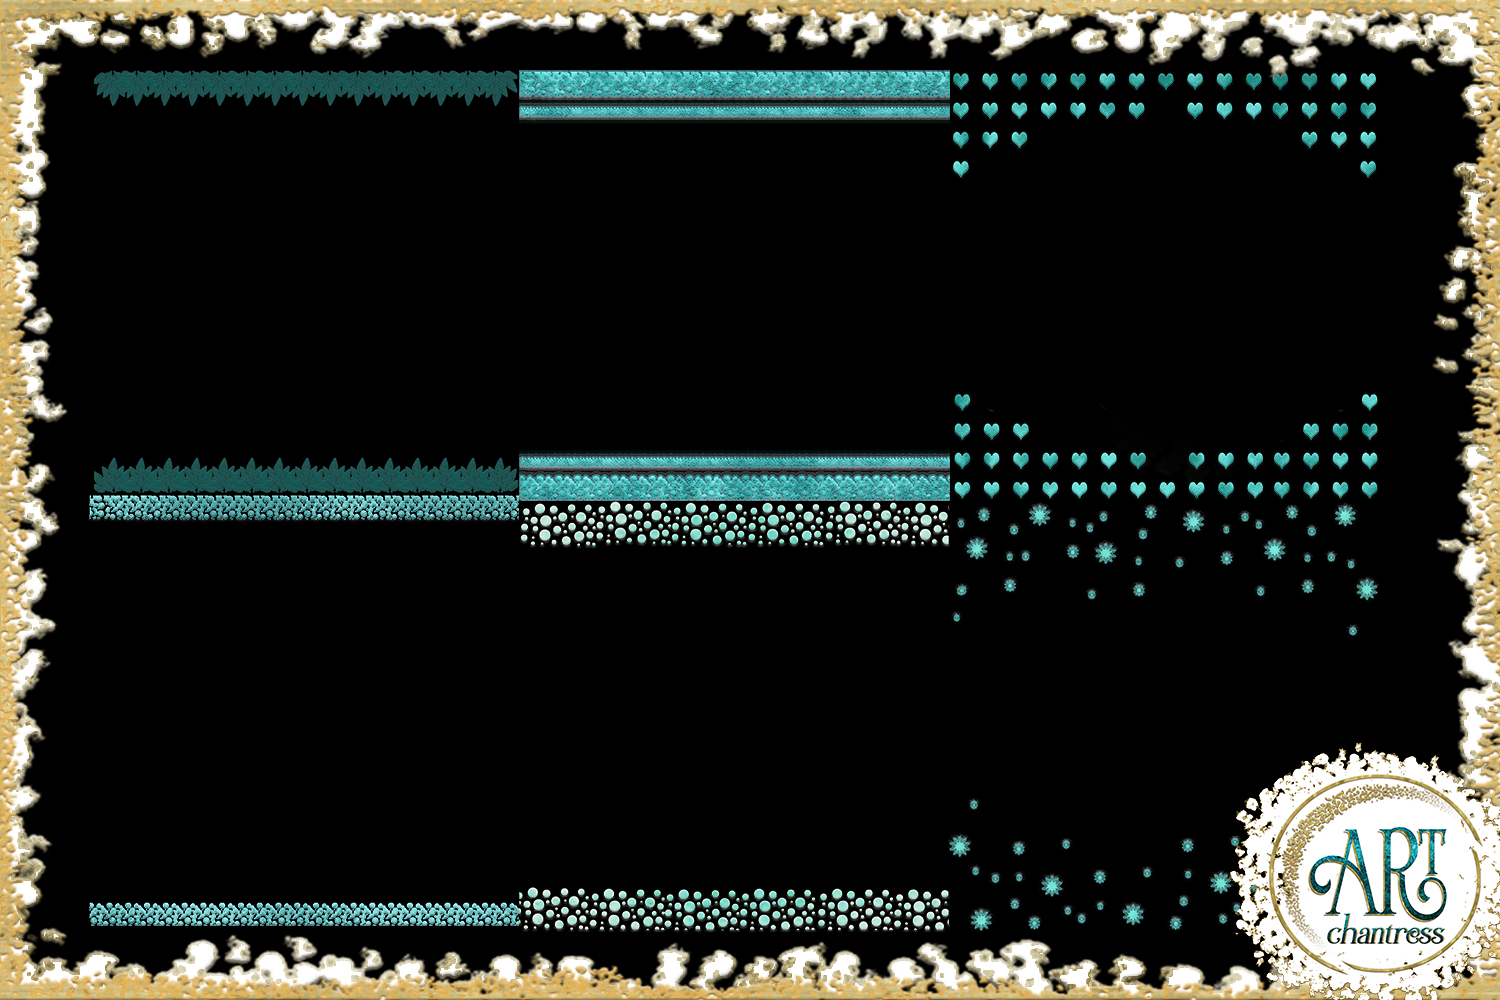 Teal Aqua Foil Glitter Seamless Digital Papers,Borders Set example image 7